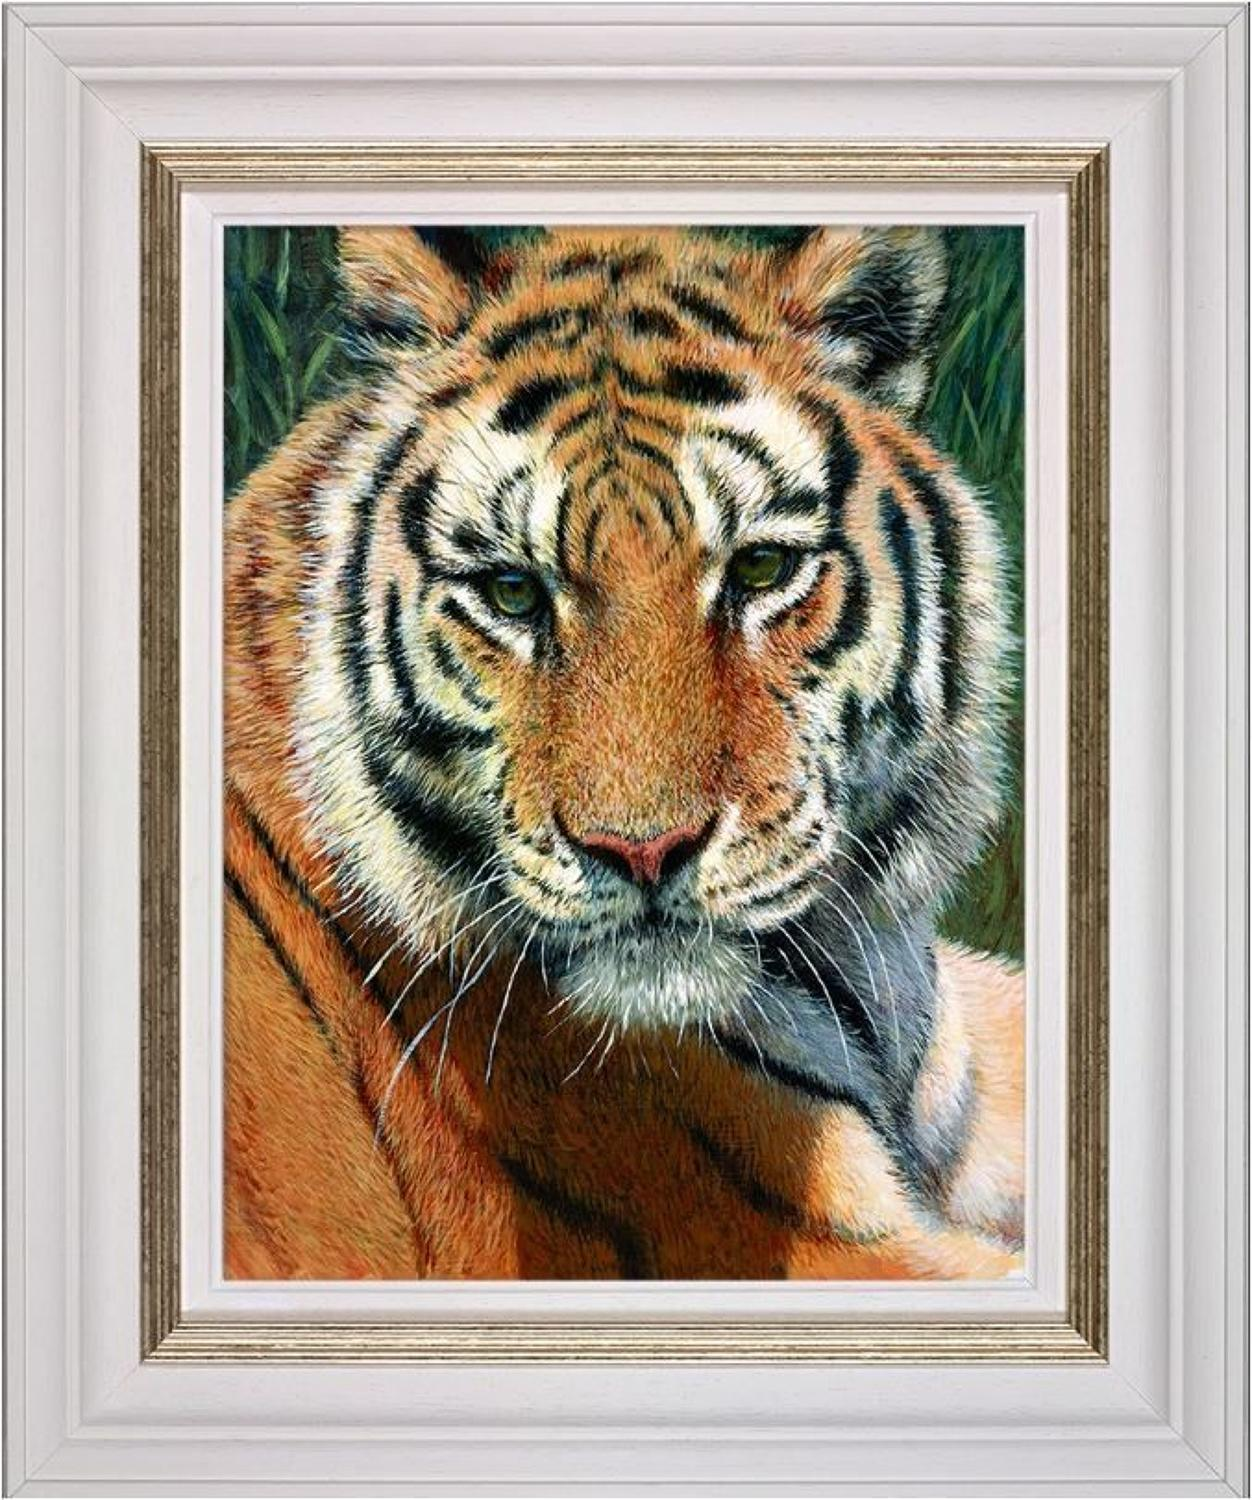 Wild Thing Framed Art Print by Tony Forrest